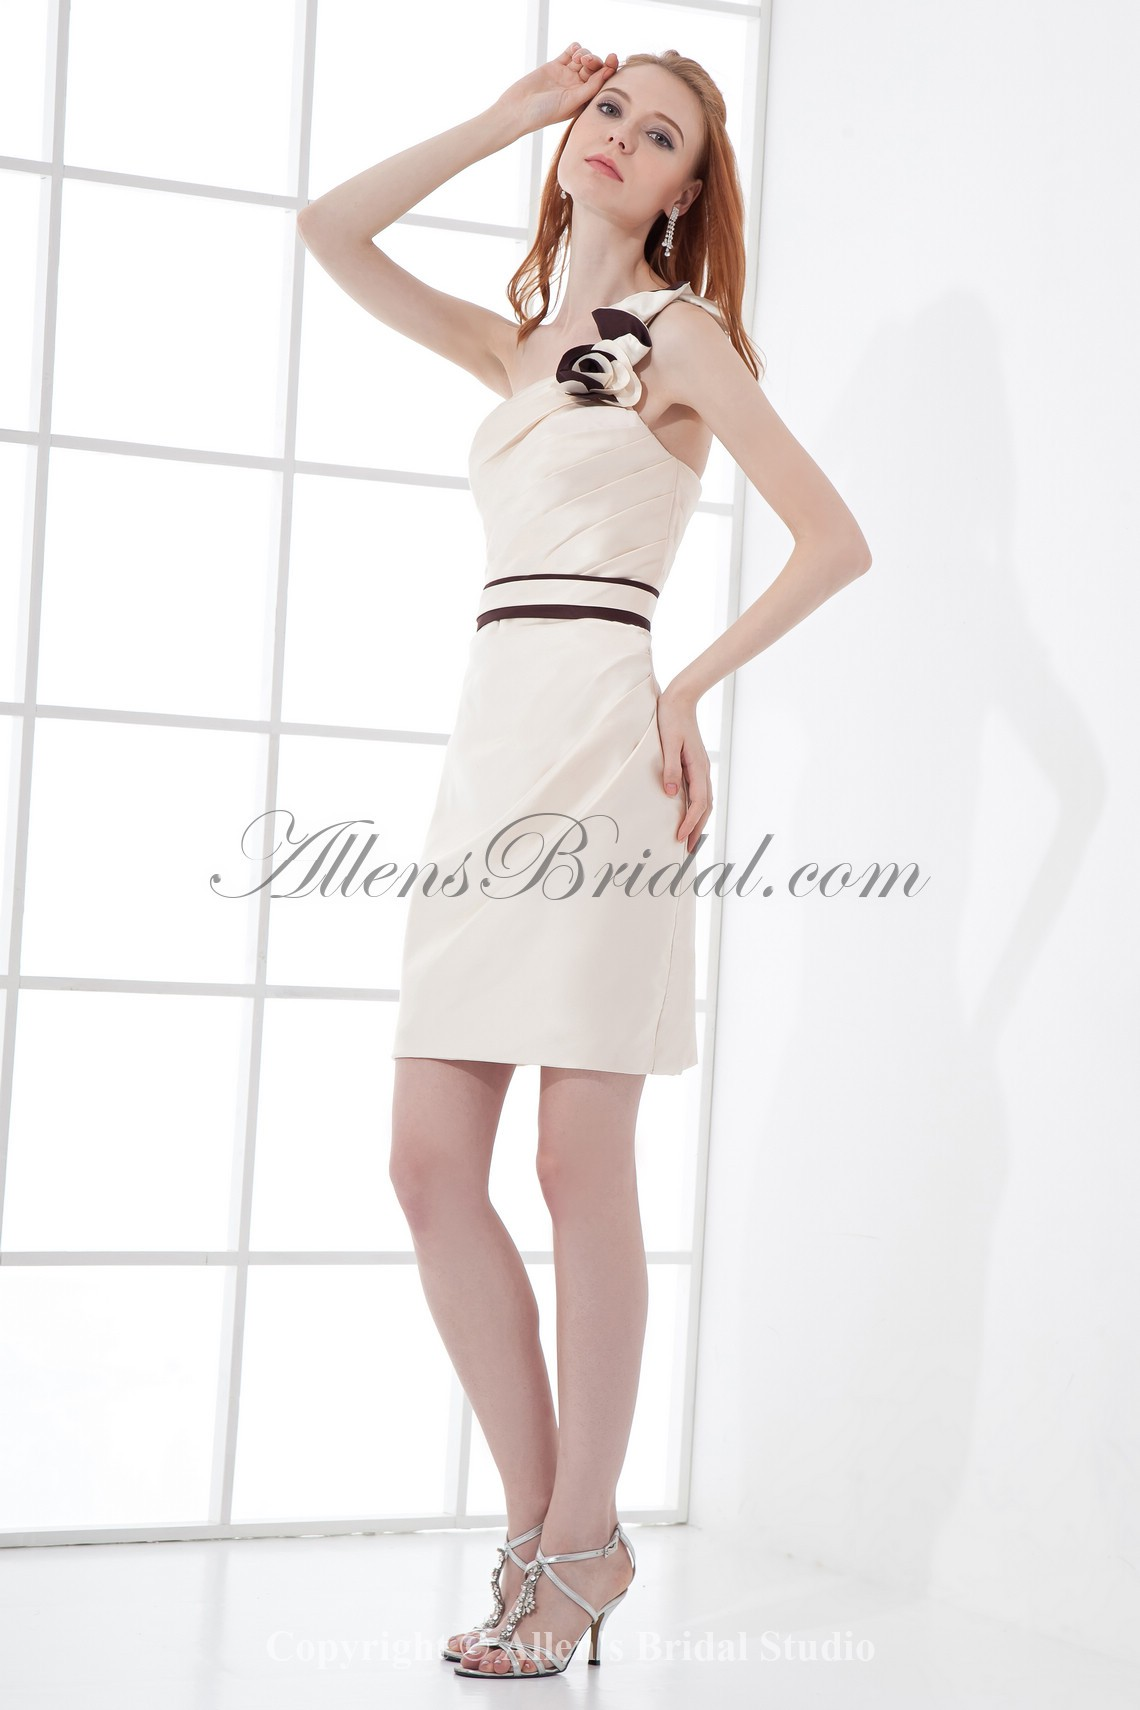 /69-548/satin-one-shoulder-neckline-sheath-short-bow-cocktail-dress.jpg